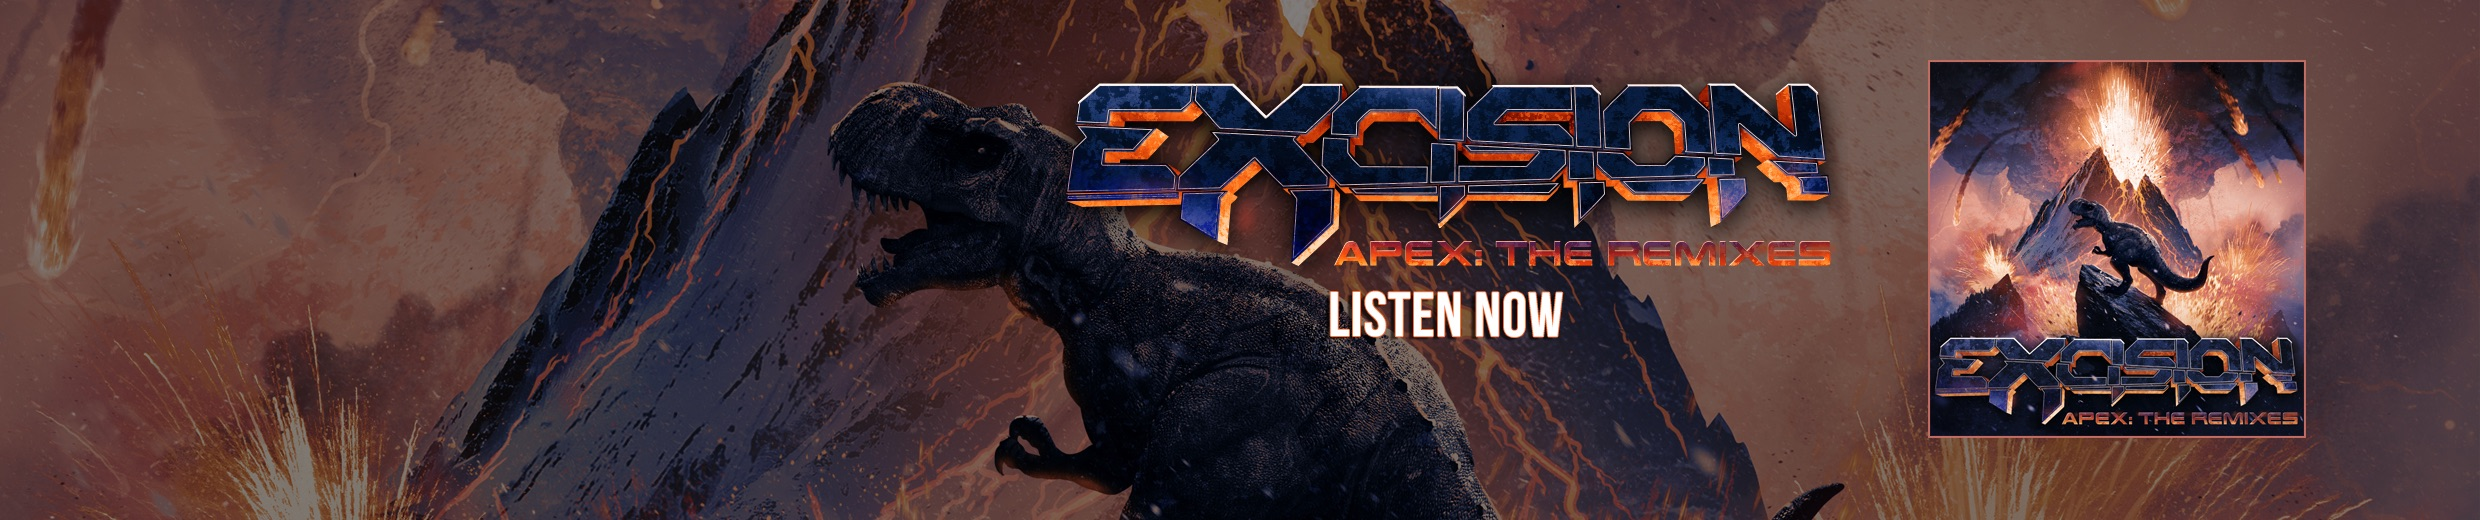 Excision   Free Listening on SoundCloud